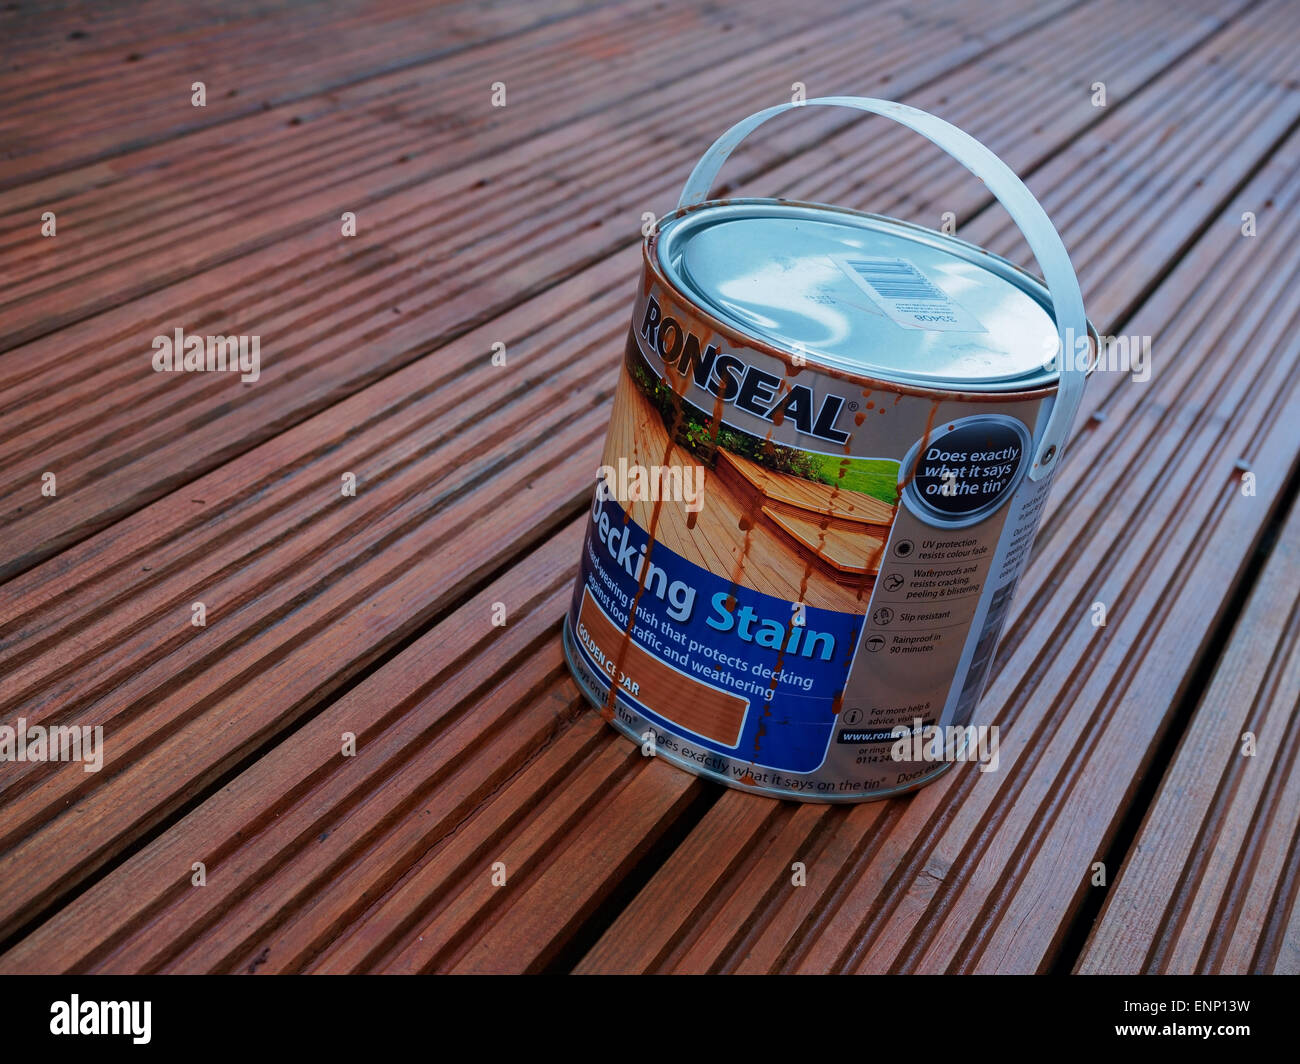 A freshly stained wooden deck, and a tin of stain paint. - Stock Image